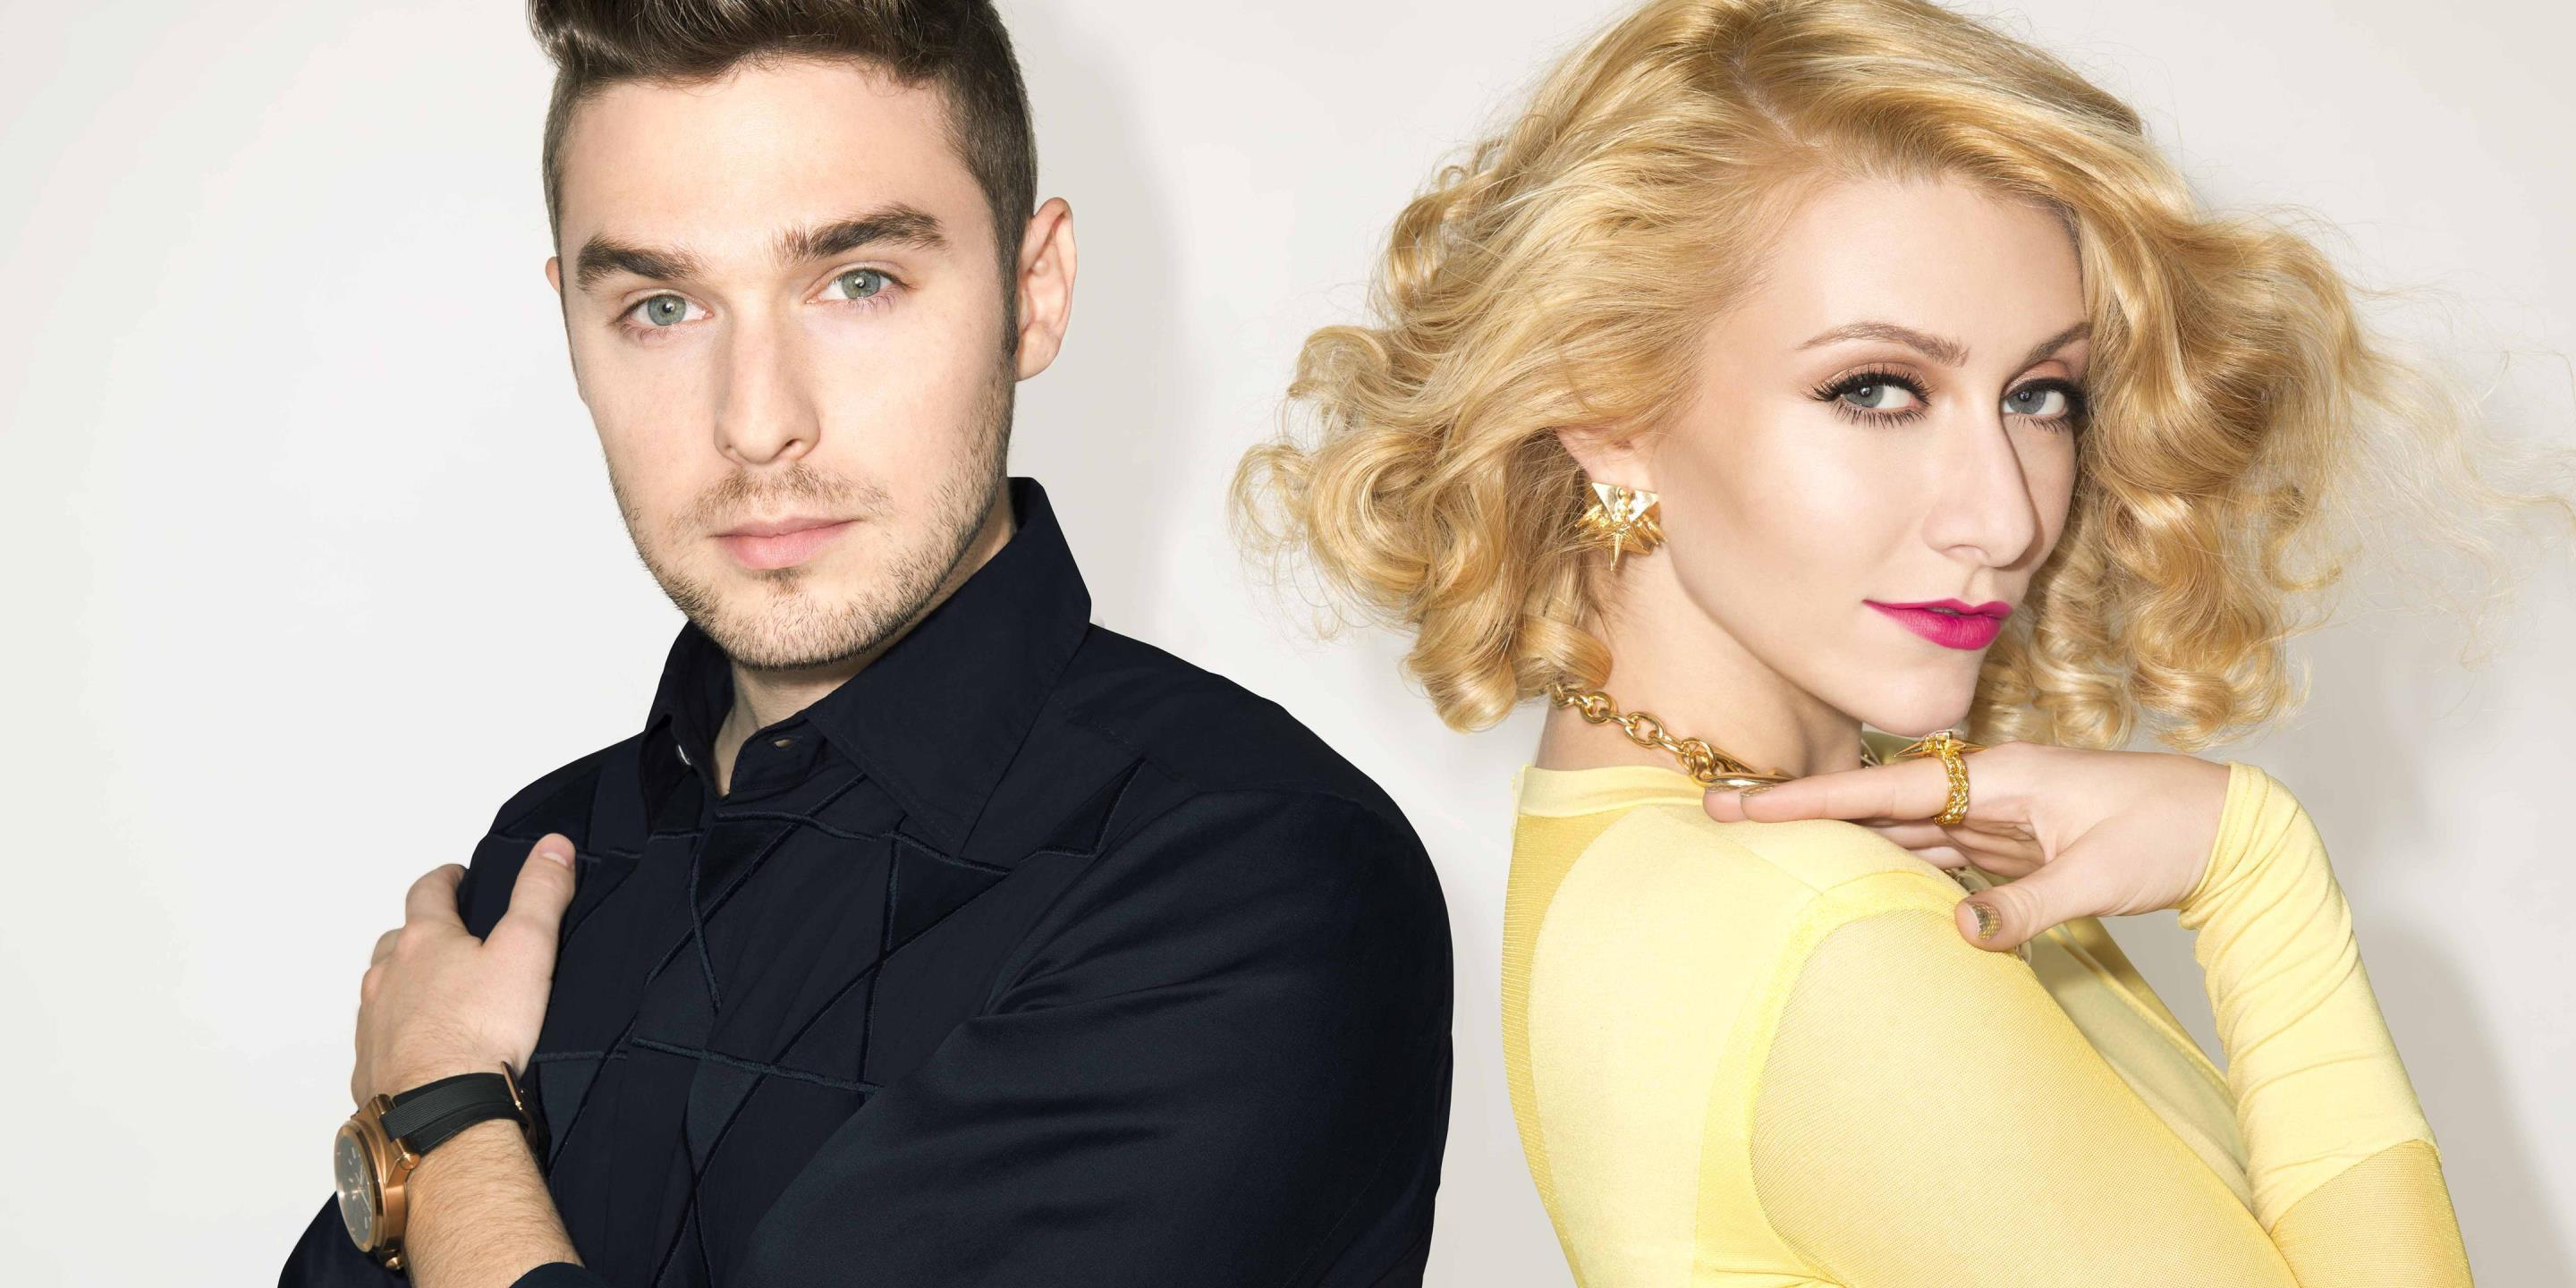 karmin-playlist-wide-4wx-3wx.jpg